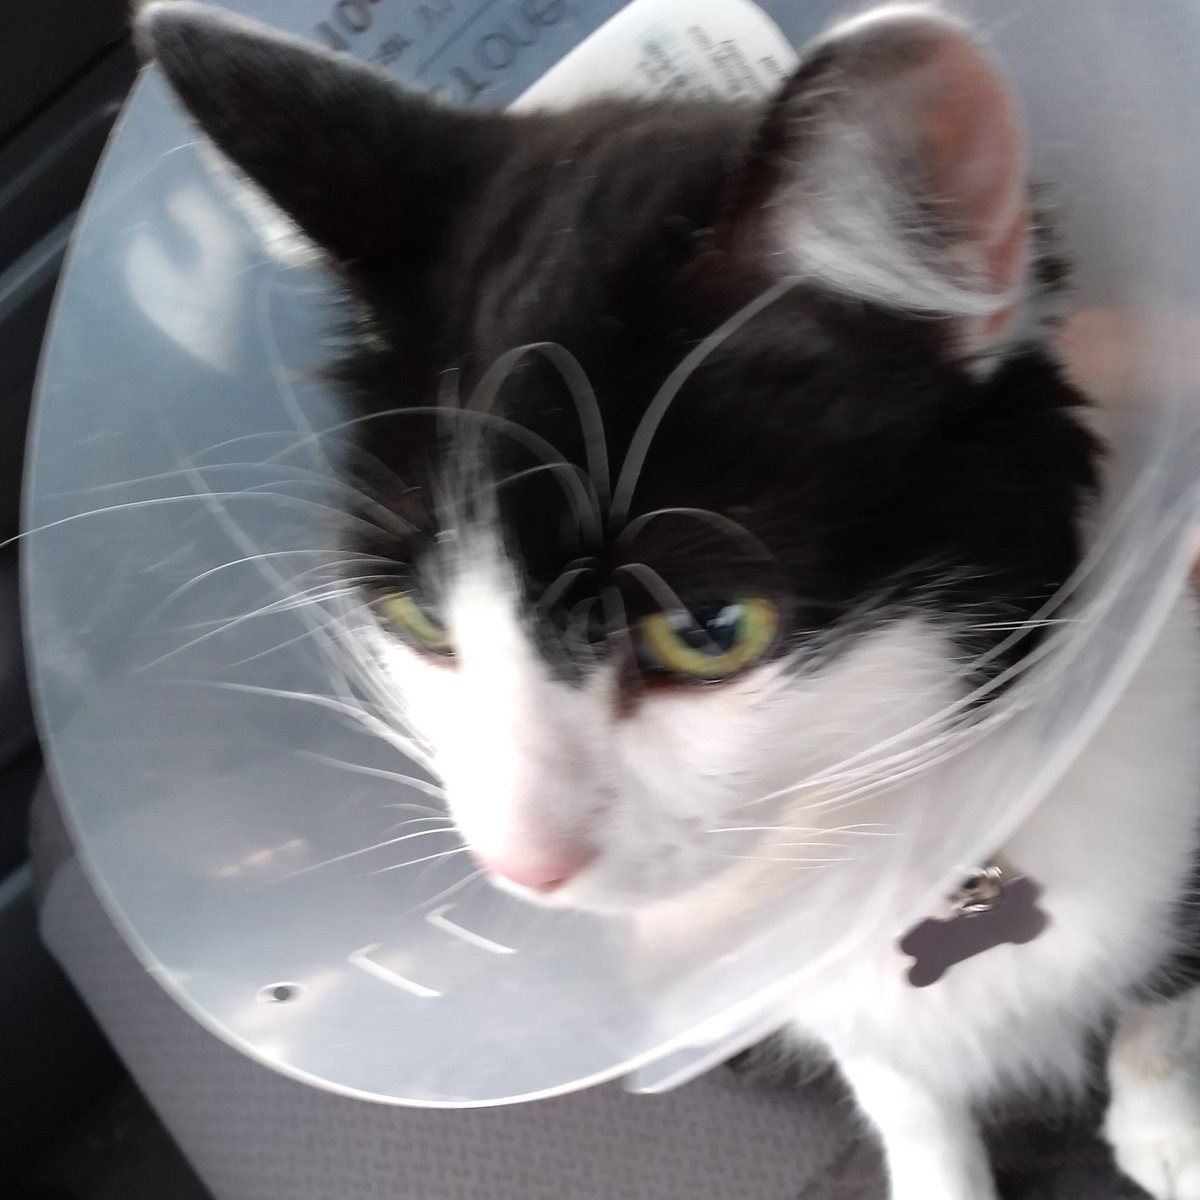 Surgery went Well. She Had Many Globs Of Tumors On Her Uterus.😖.  #Happy #That #I #Spayed #Her #Before #Tumors #Got #Out #Of #Controlled #SpayAndNeuter #SpayAndNeuterYourPets #SpayedAndChipped #SpayAndNeuterSavesLives #Love #Your #Fur #Babies #AdoptAndShop